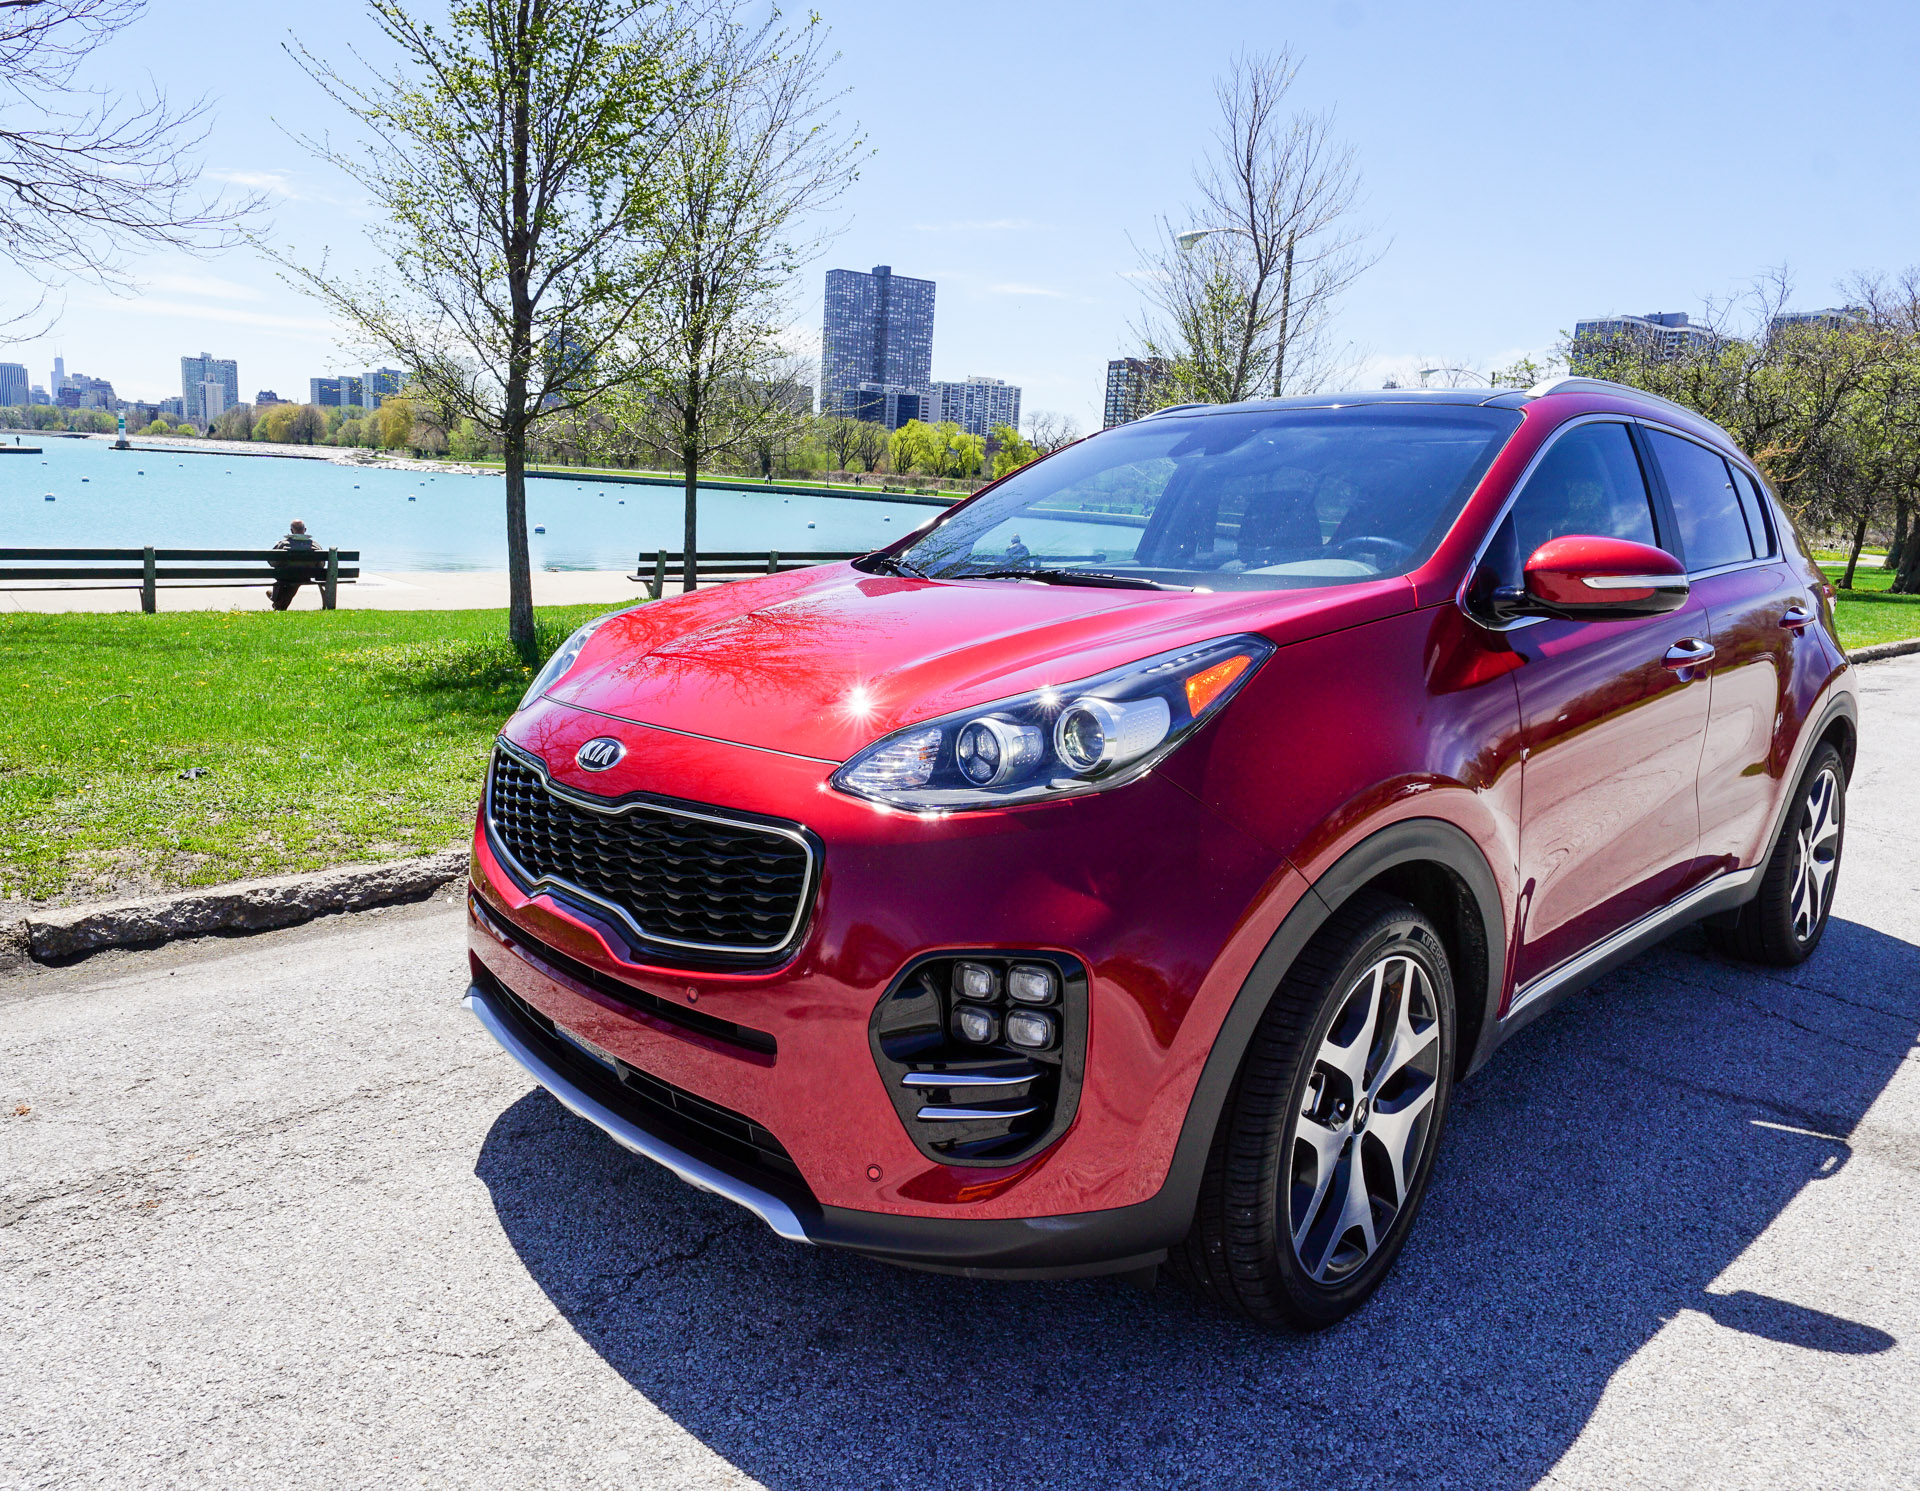 review 2017 kia sportage sx turbo 95 octane. Black Bedroom Furniture Sets. Home Design Ideas